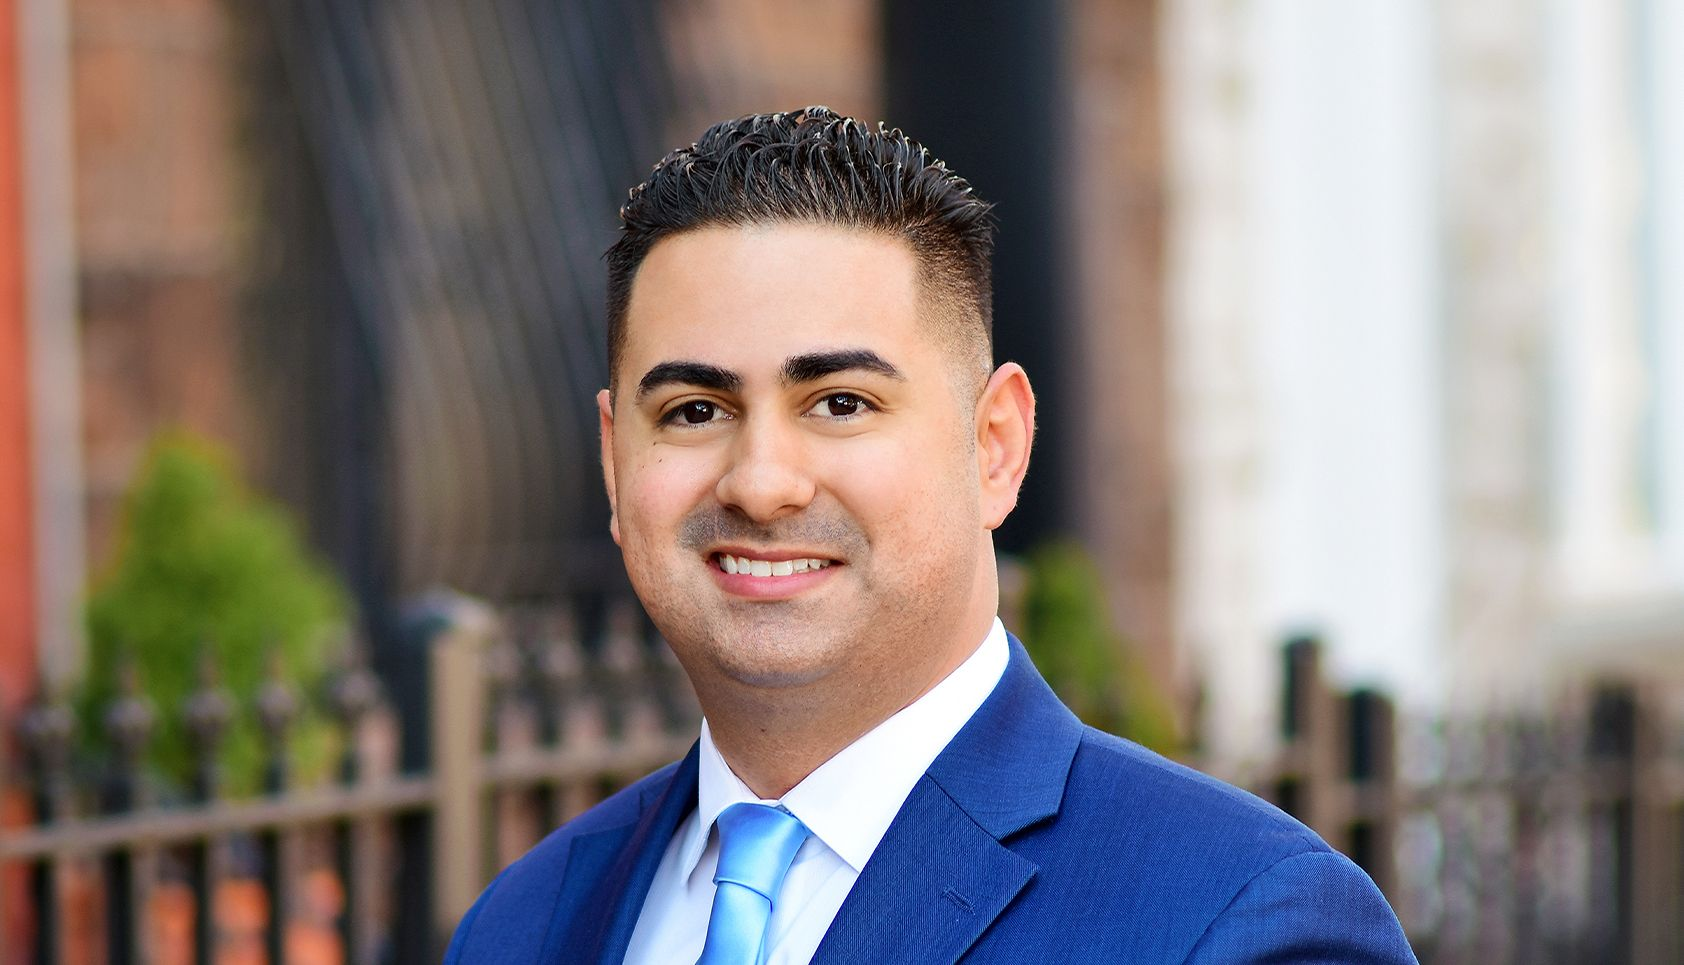 Mohammed Rios is a Licensed Real Estate Salesperson at HomeDax Real Estate NYC. Contact Mohammed today to discuss your sale, purchase or rental needs.